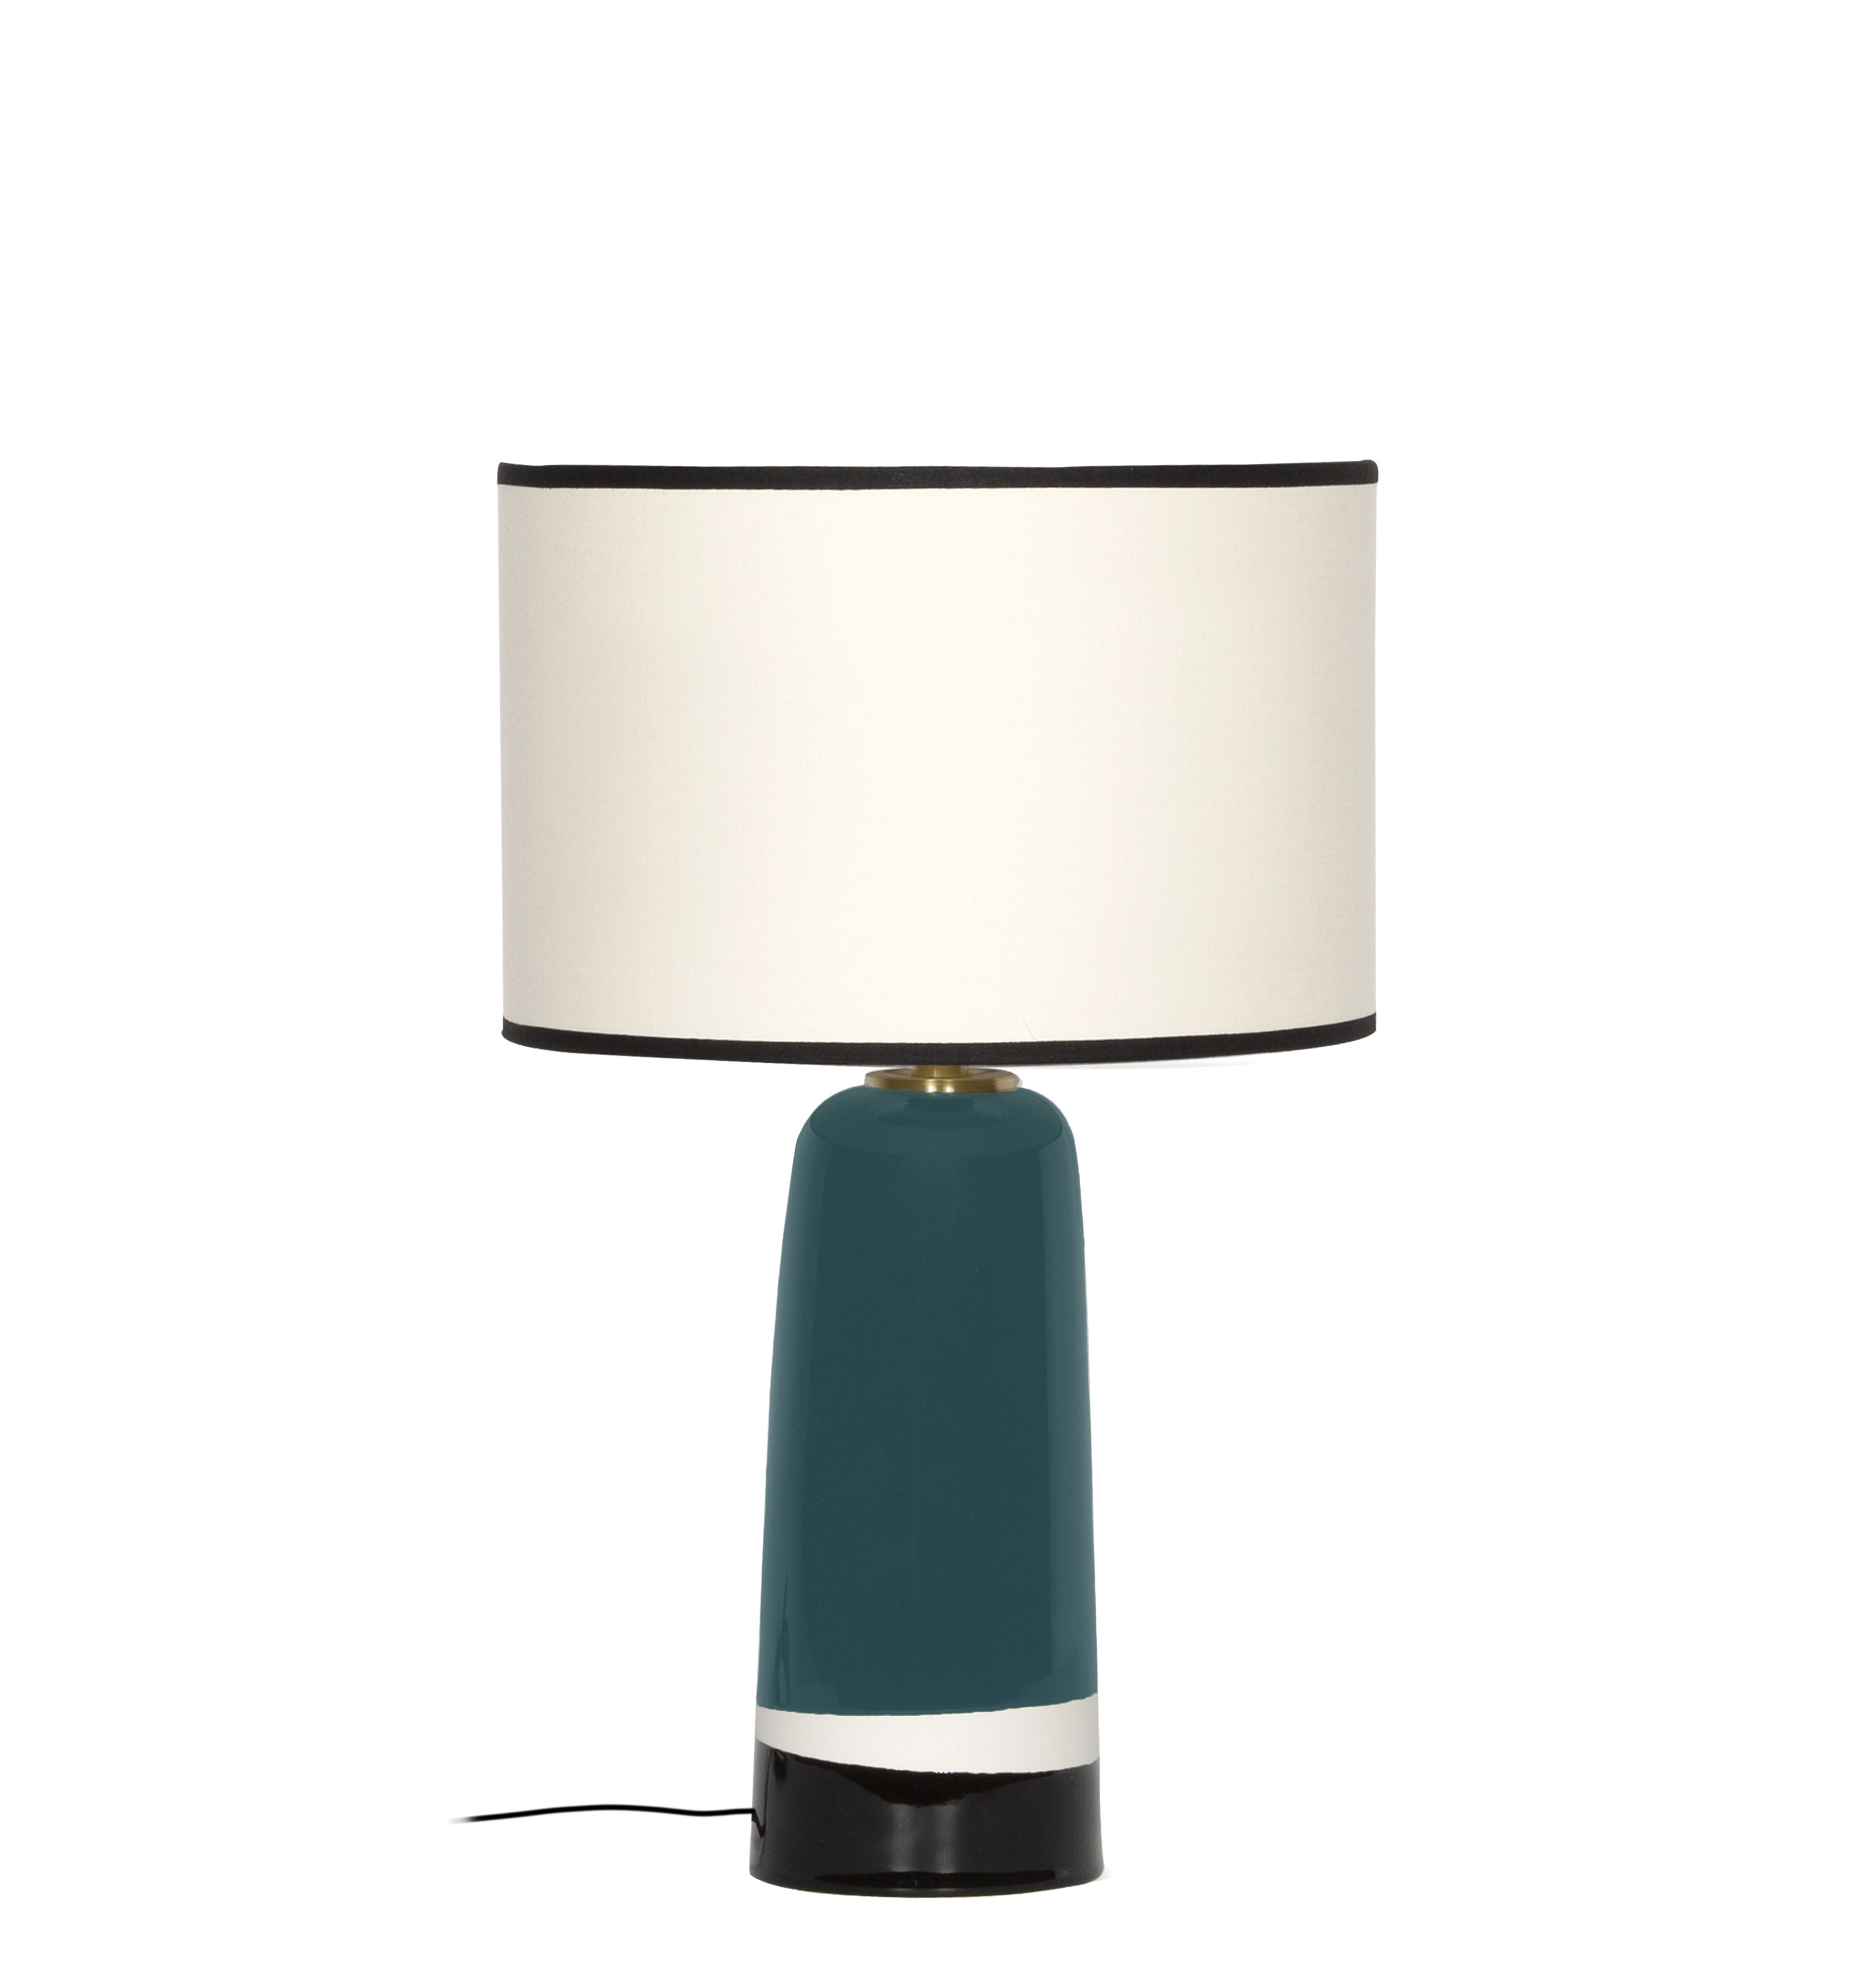 Lighting - Table Lamps - Sicilia Small Table lamp - / H 49 cm - Ceramic by Maison Sarah Lavoine - Sarah blue - Ceramic, Cotton